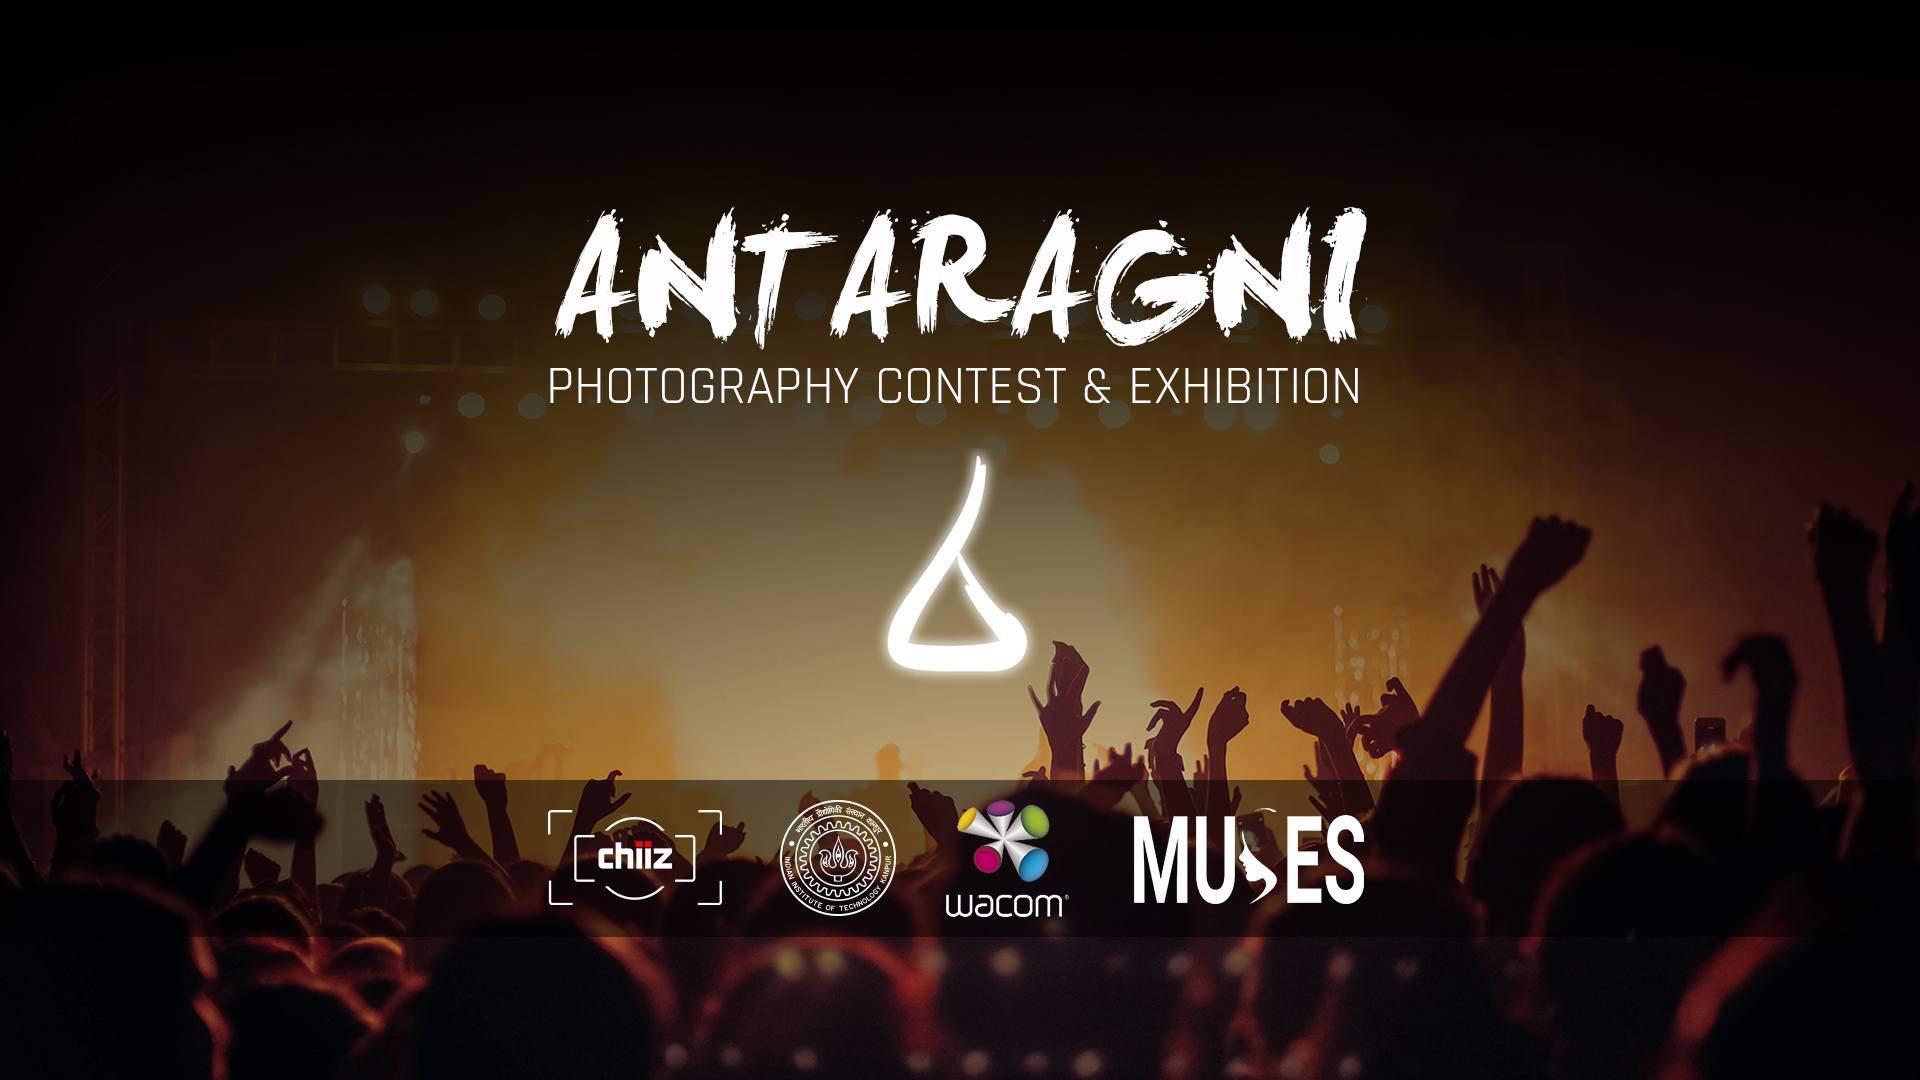 Chiiz – Antaragni Photography contest